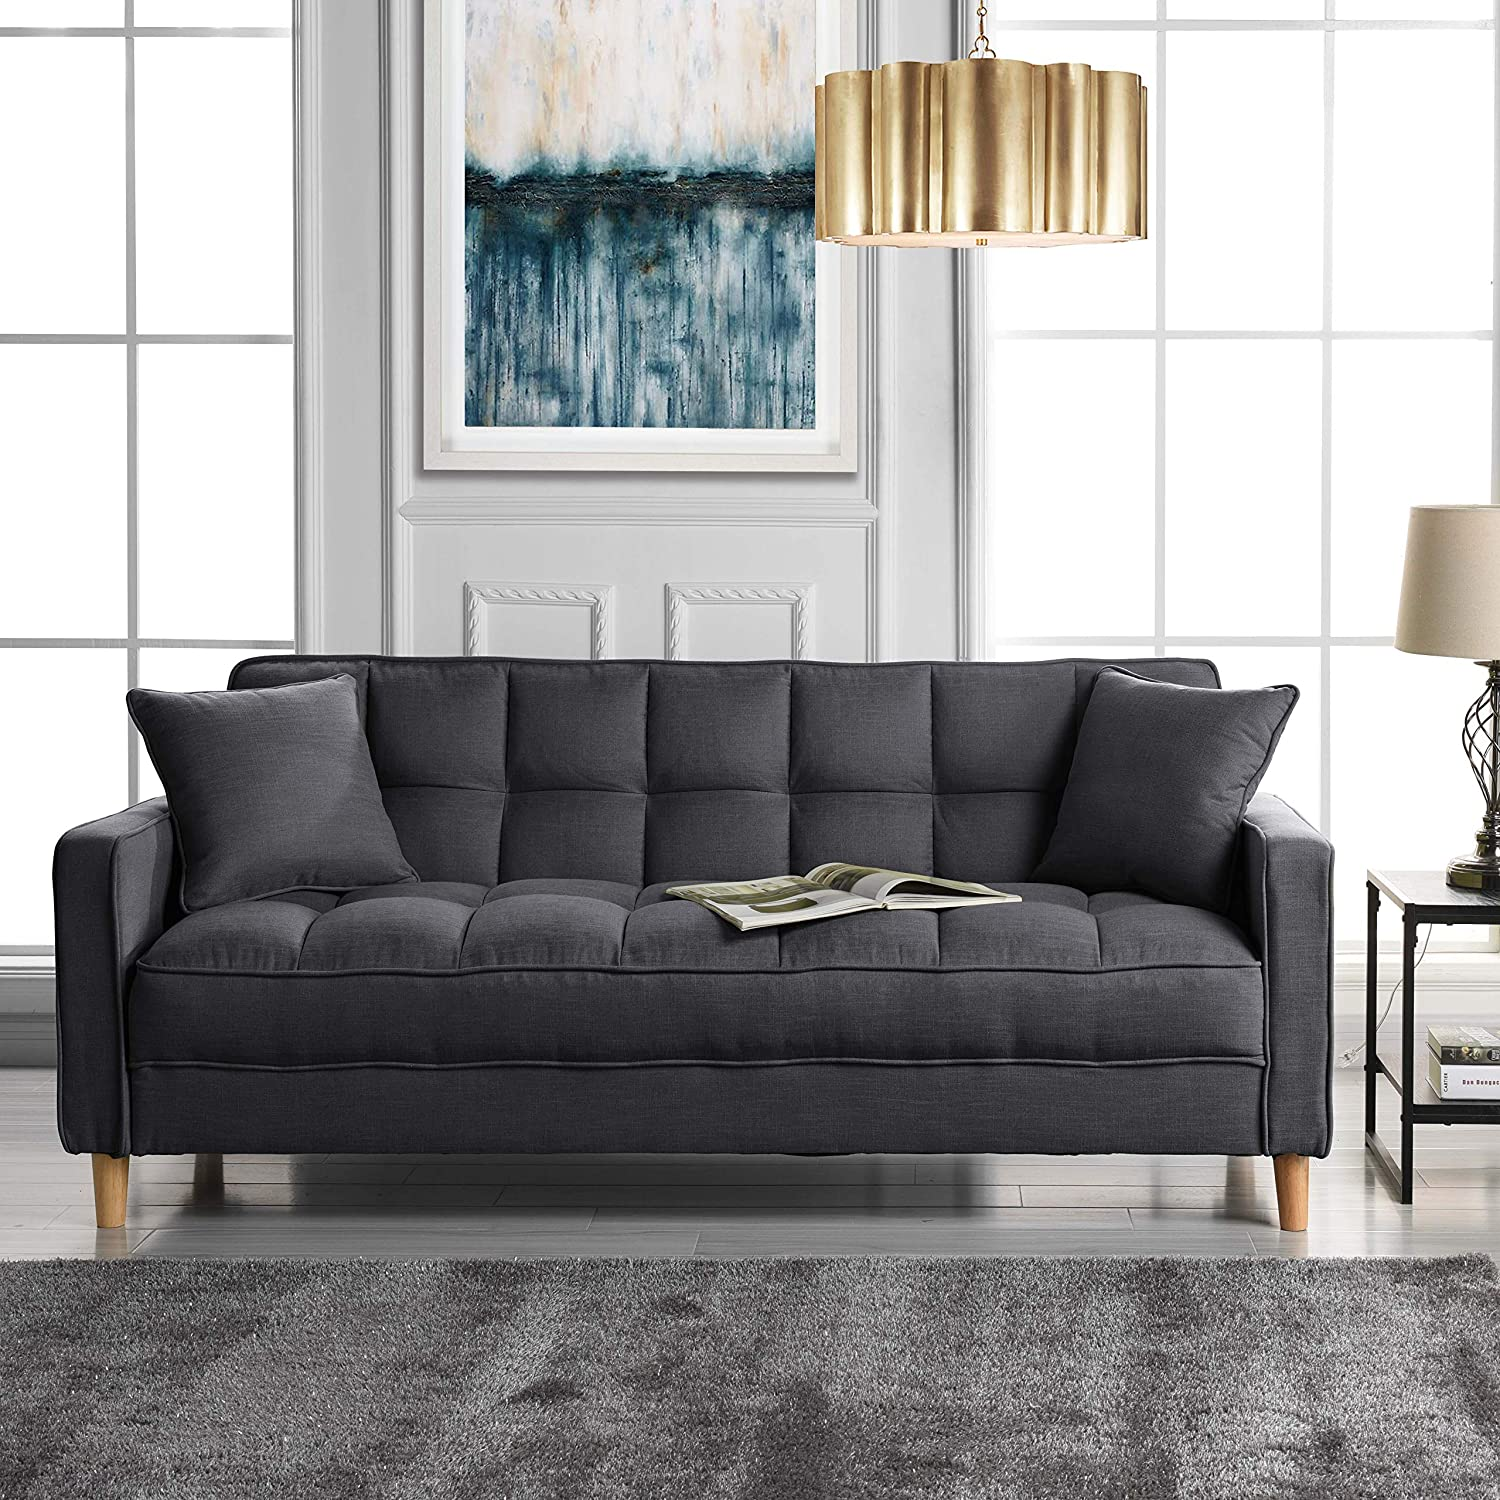 small-sofa-for-sale-grey-fabric-upholstery-with-tufting-bench-seat-tight-back-tapered-legs-modern-space-saving-furniture-for-living-room